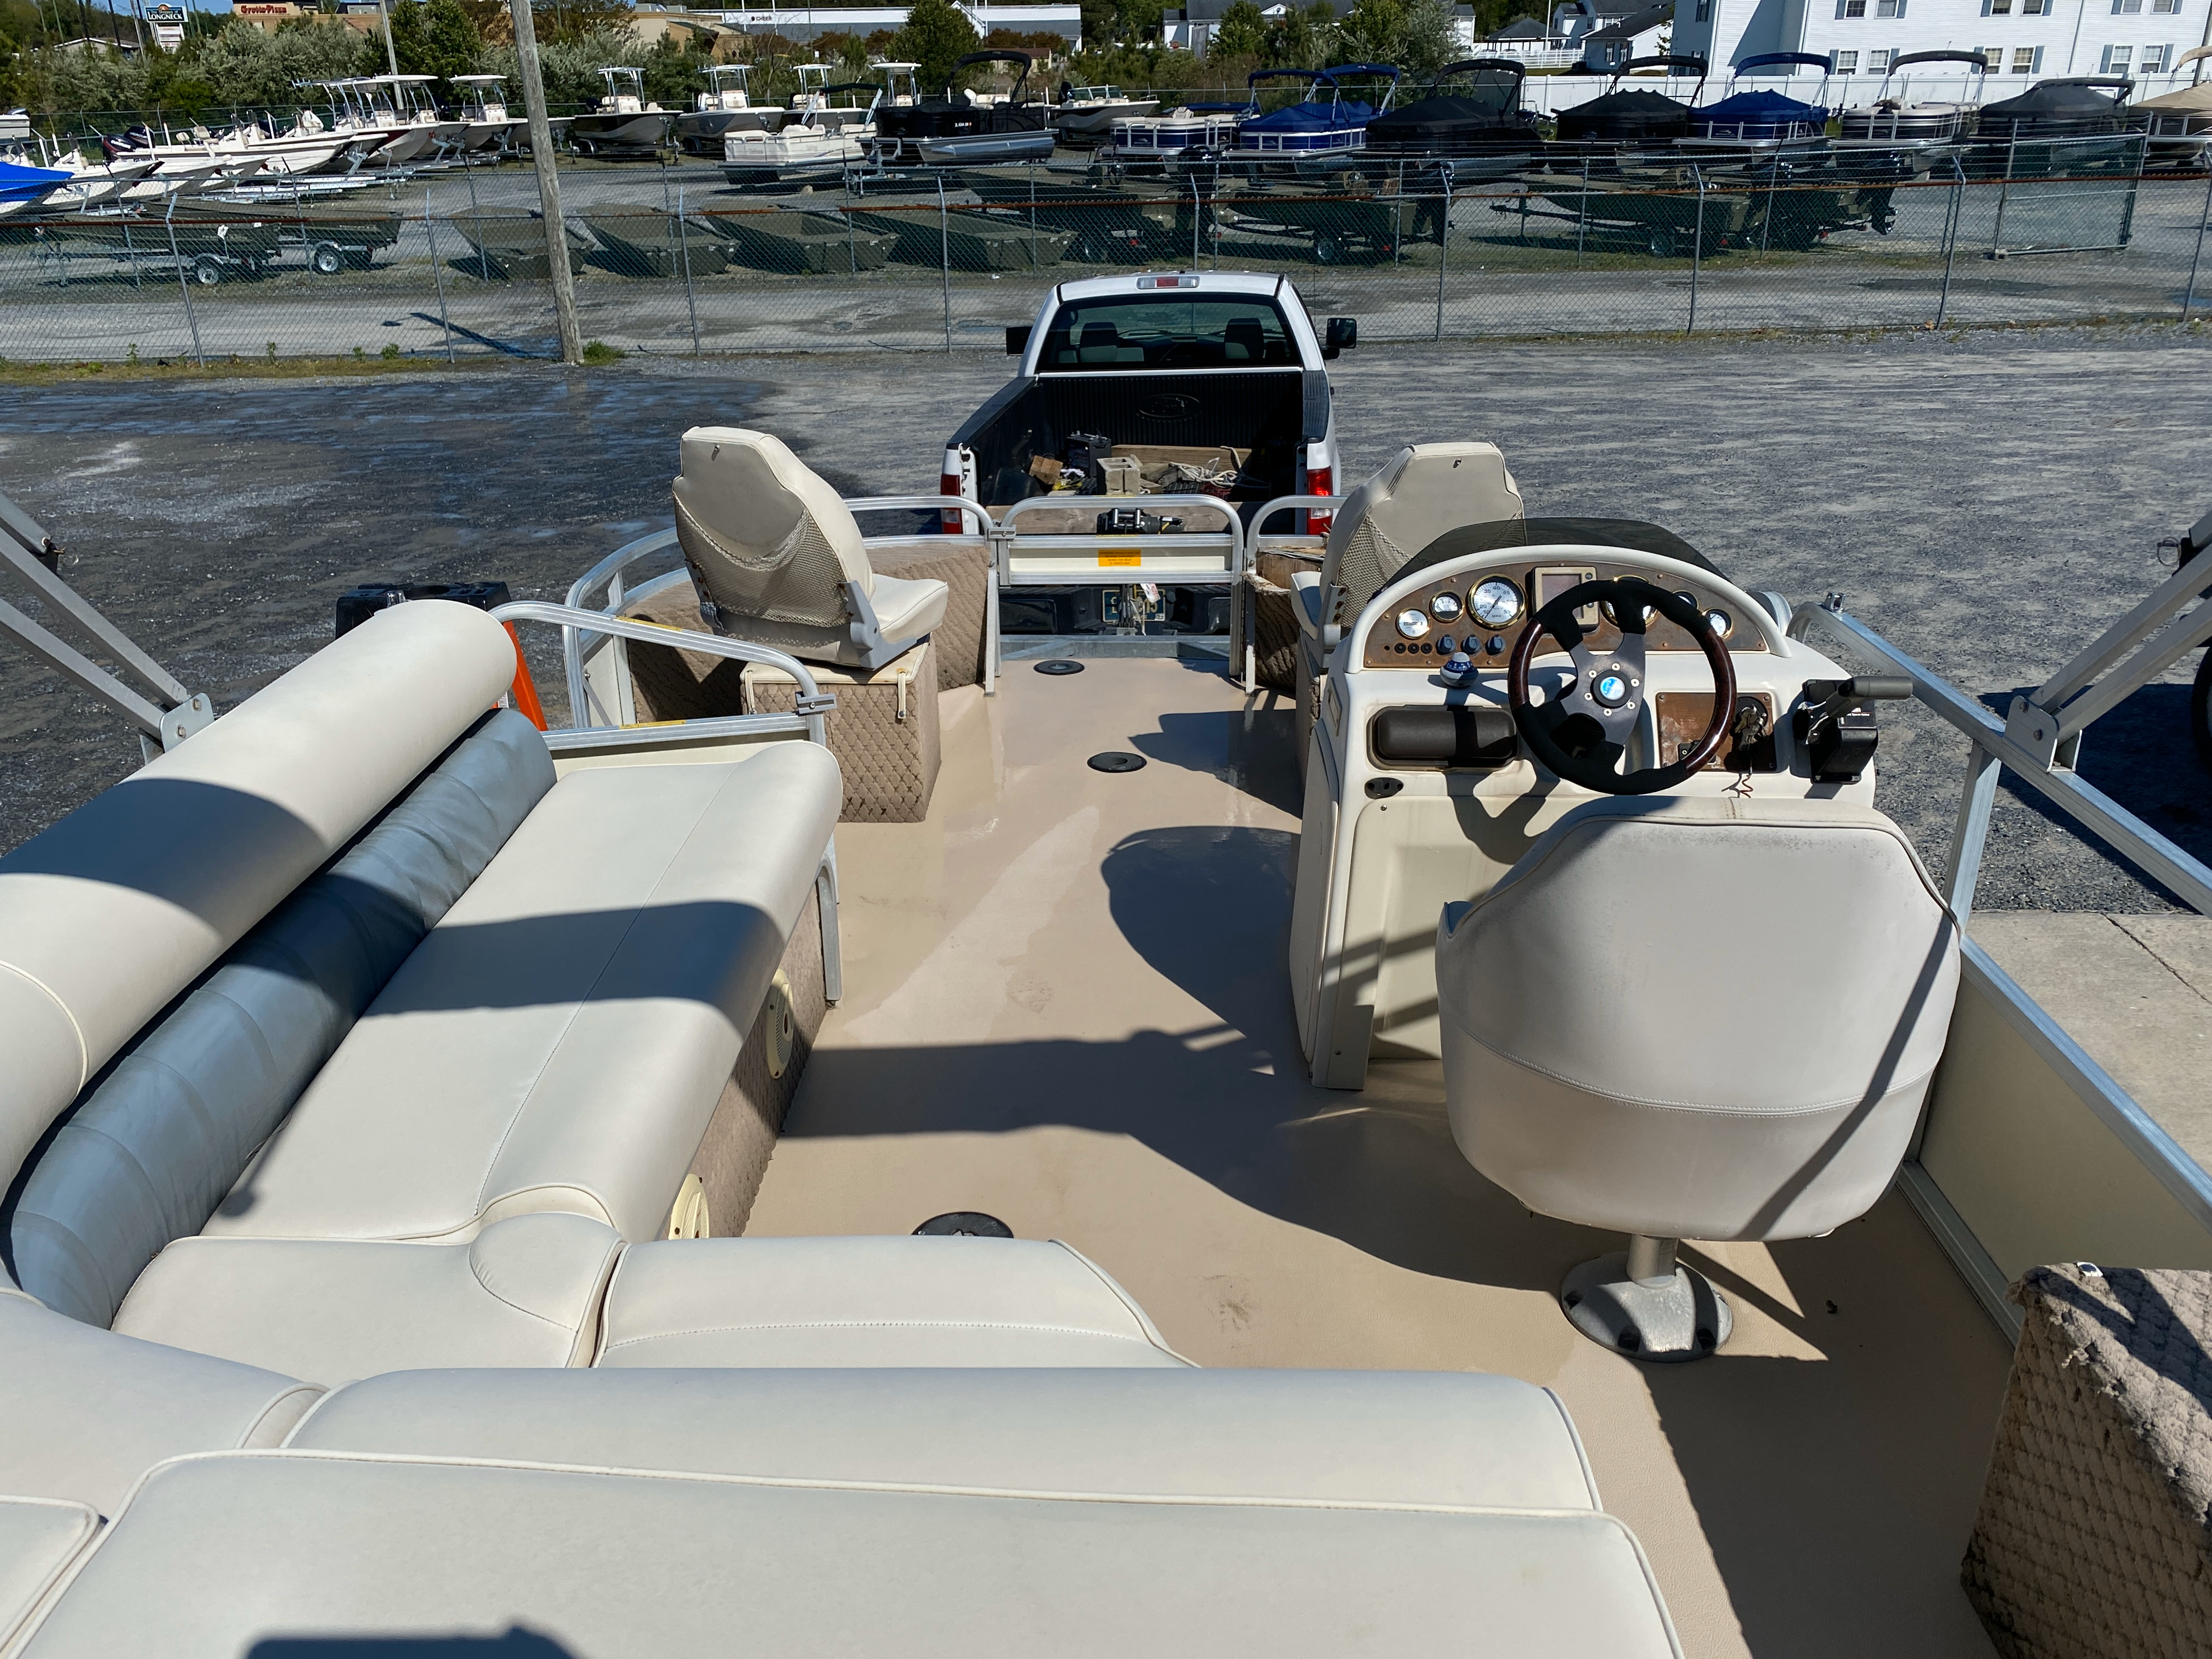 2002 Tahoe boat for sale, model of the boat is Grand Tahoe FNF & Image # 3 of 10